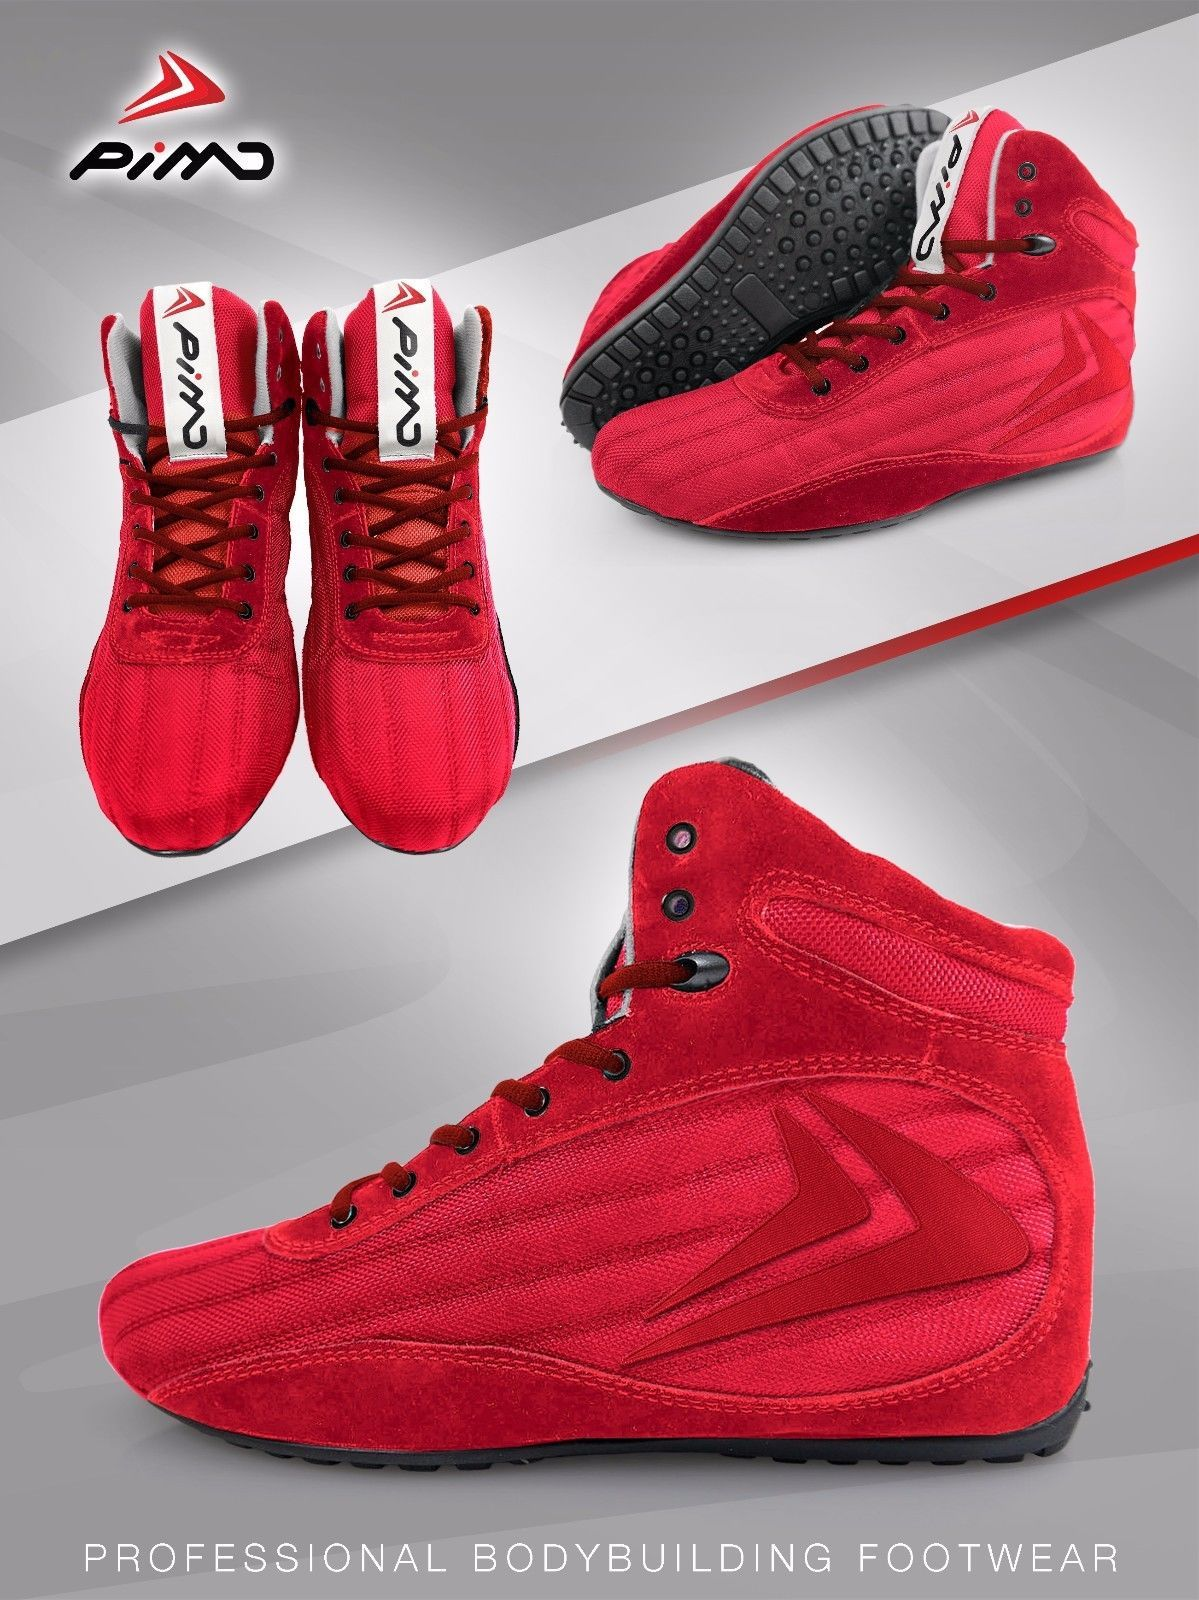 bd0a76be1928b0 Pimd red #x-core gym #shoes weight lifting high top boots bodybuilding mma